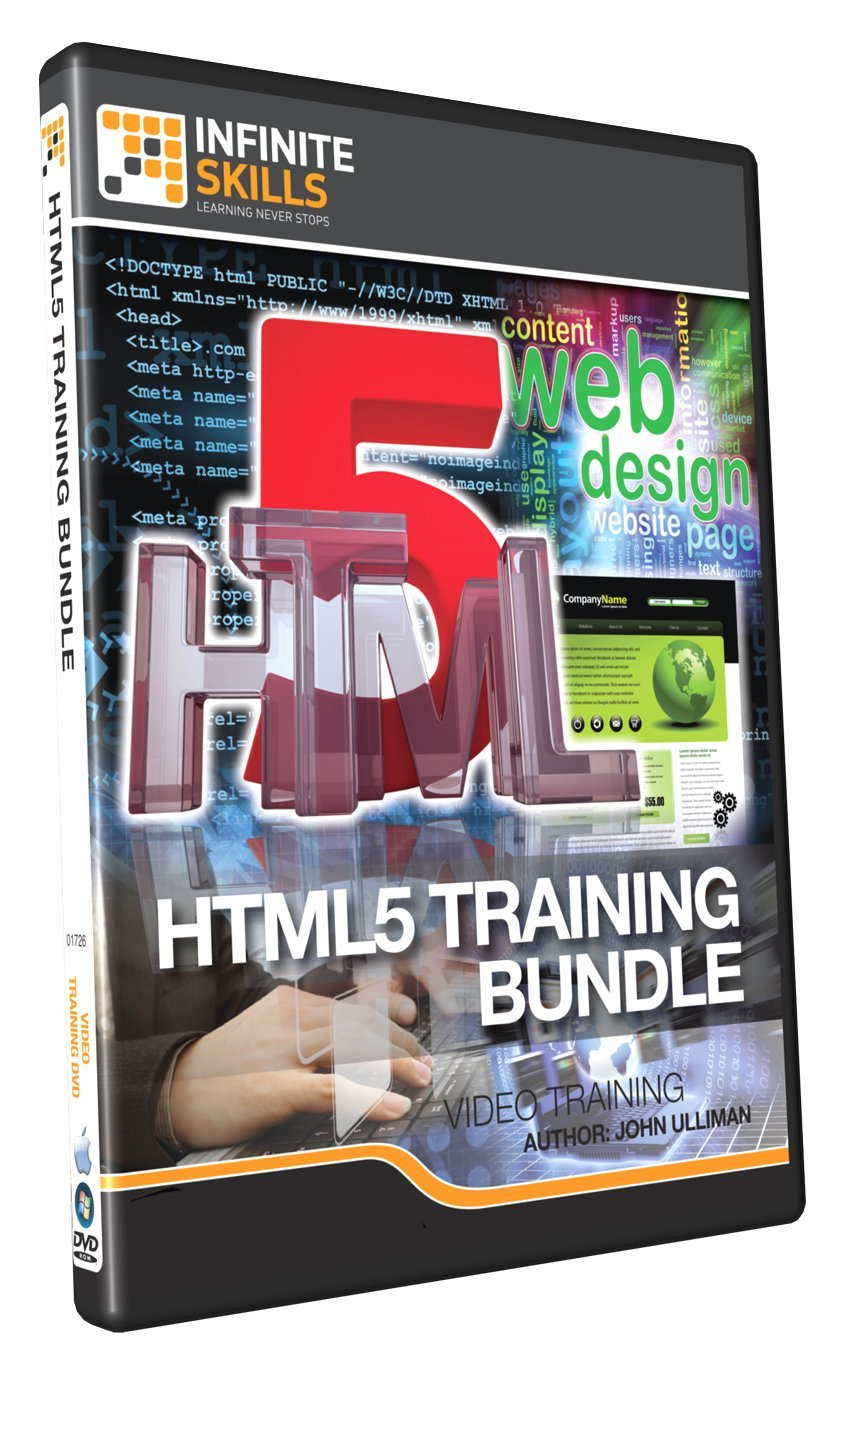 Discounted HTML5 Development Training DVD (14 Hours of Video Training)